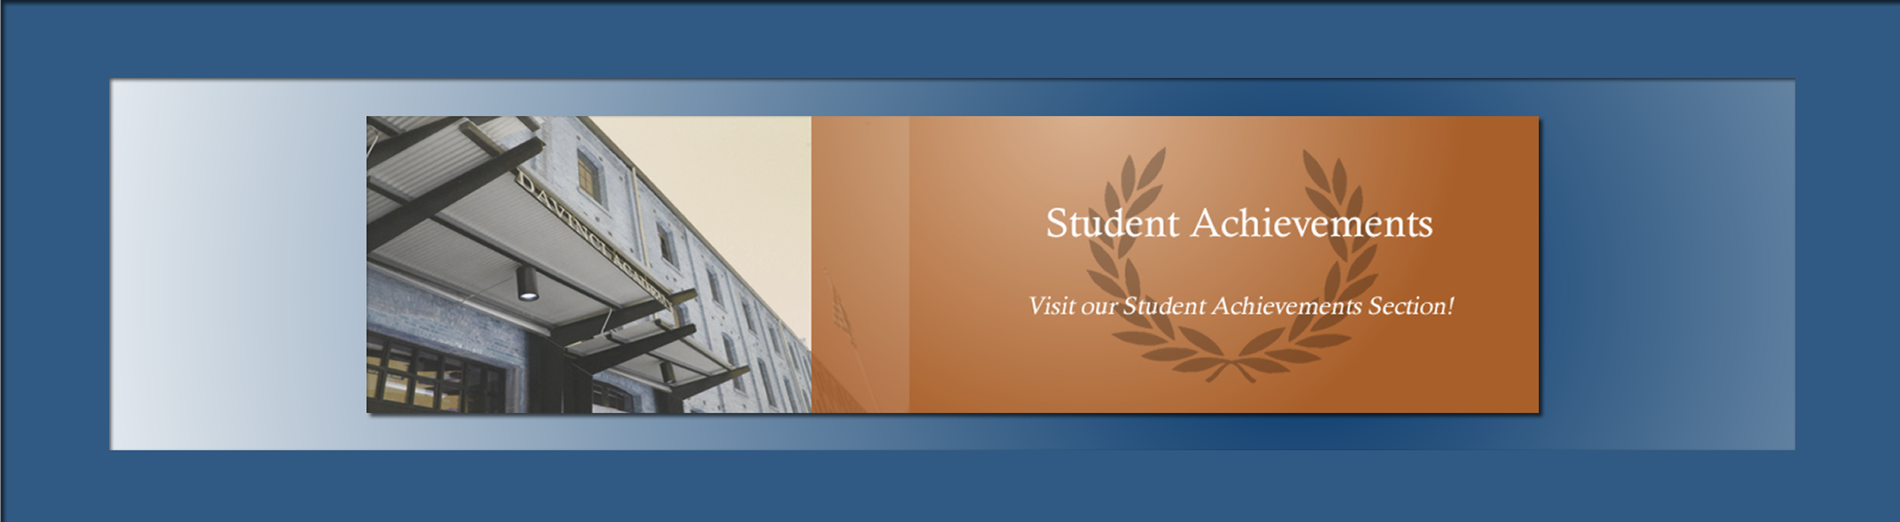 Visit the student achievement section for more information!